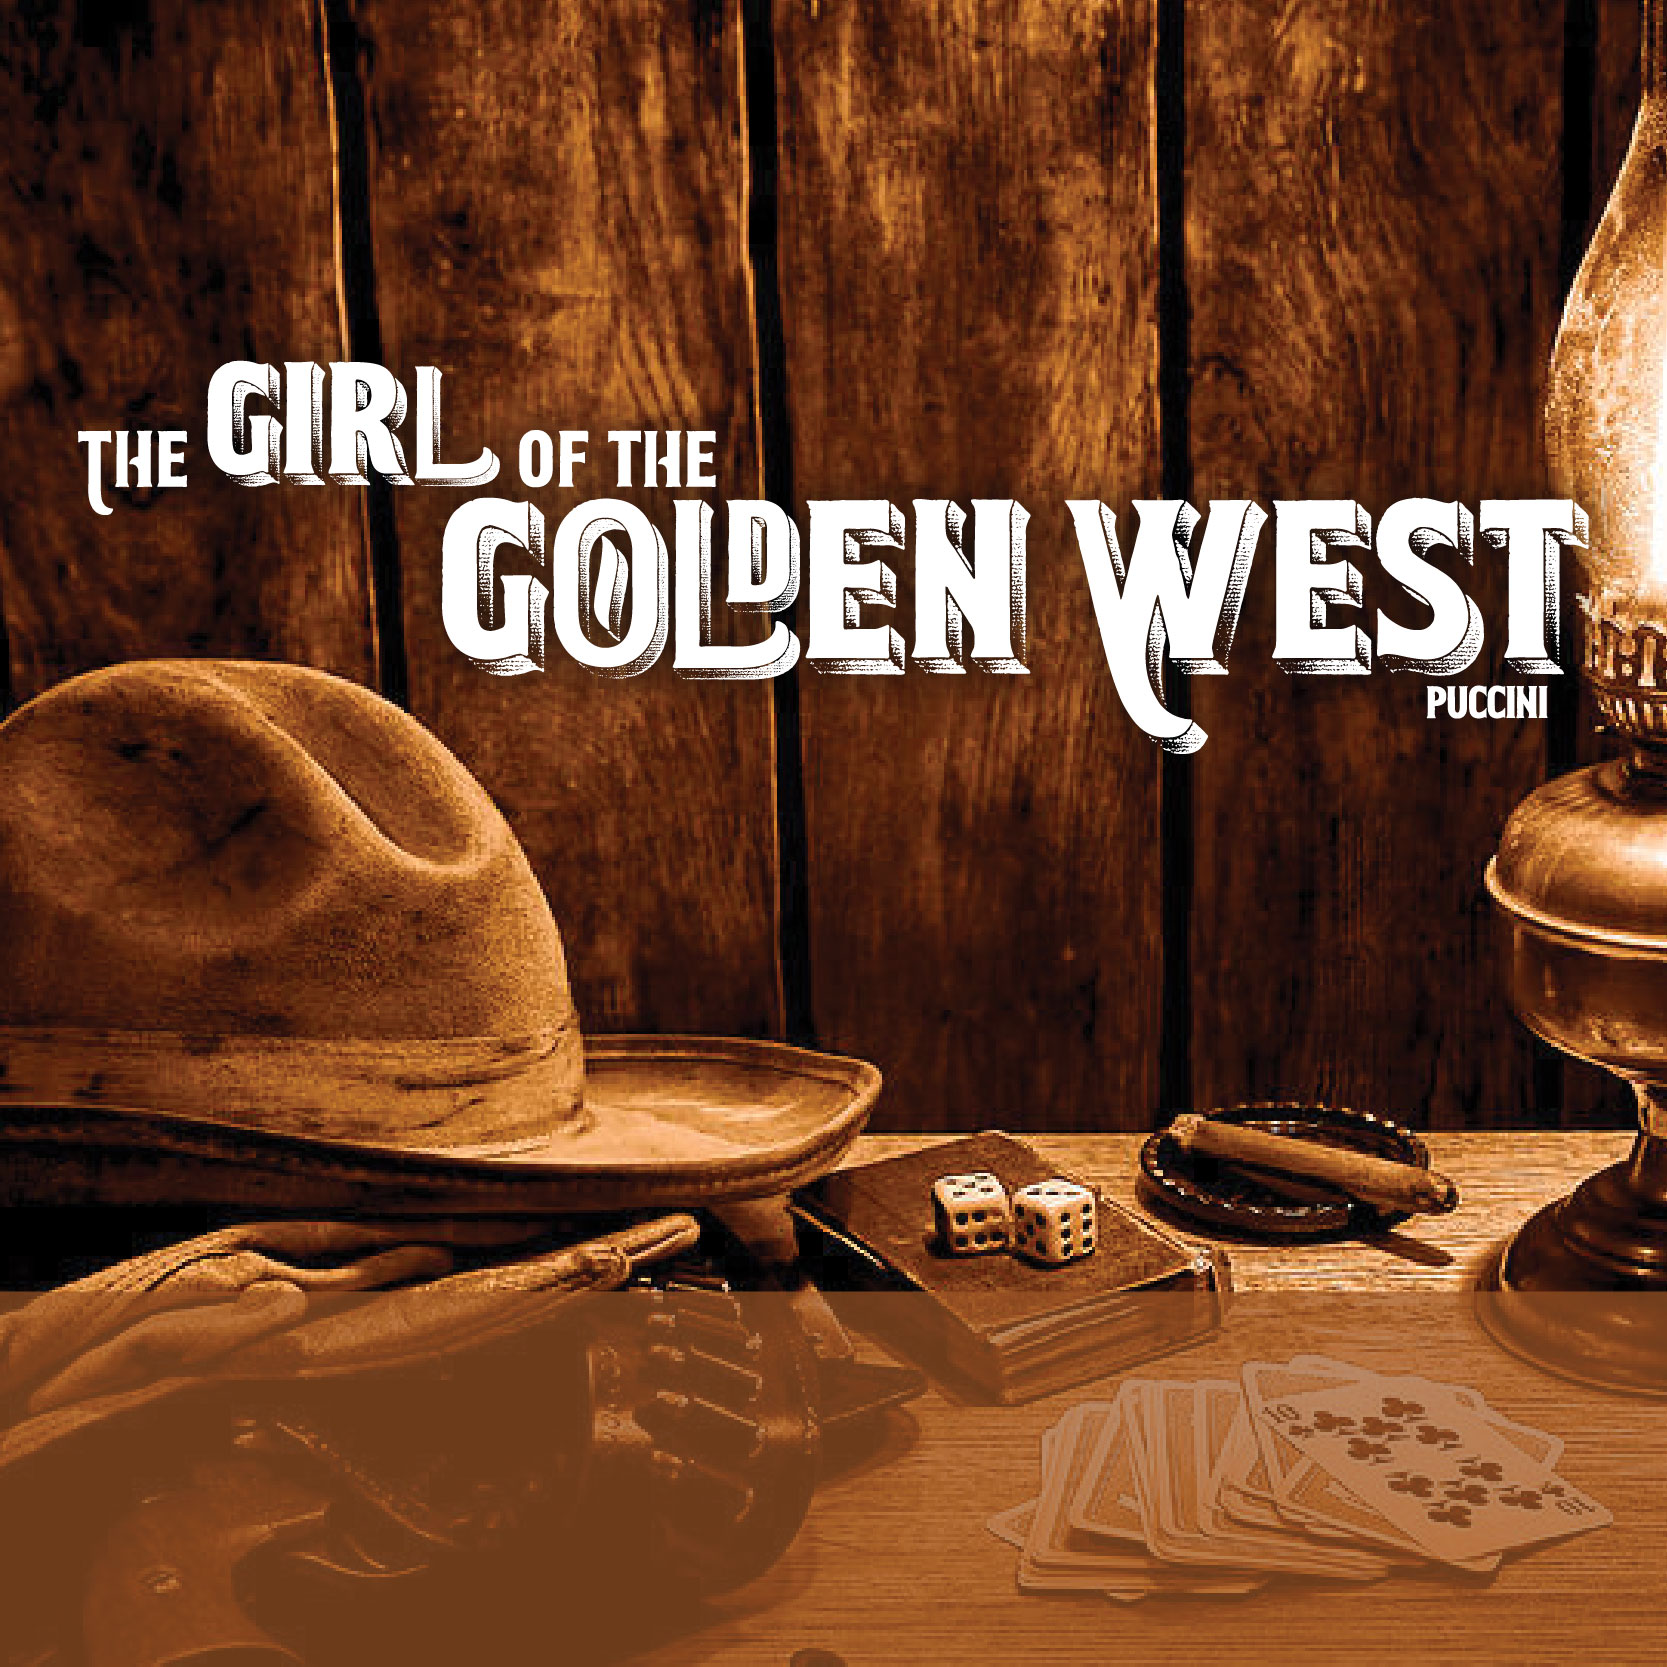 SEASON - On the Town - Golden West image 800X800.jpg